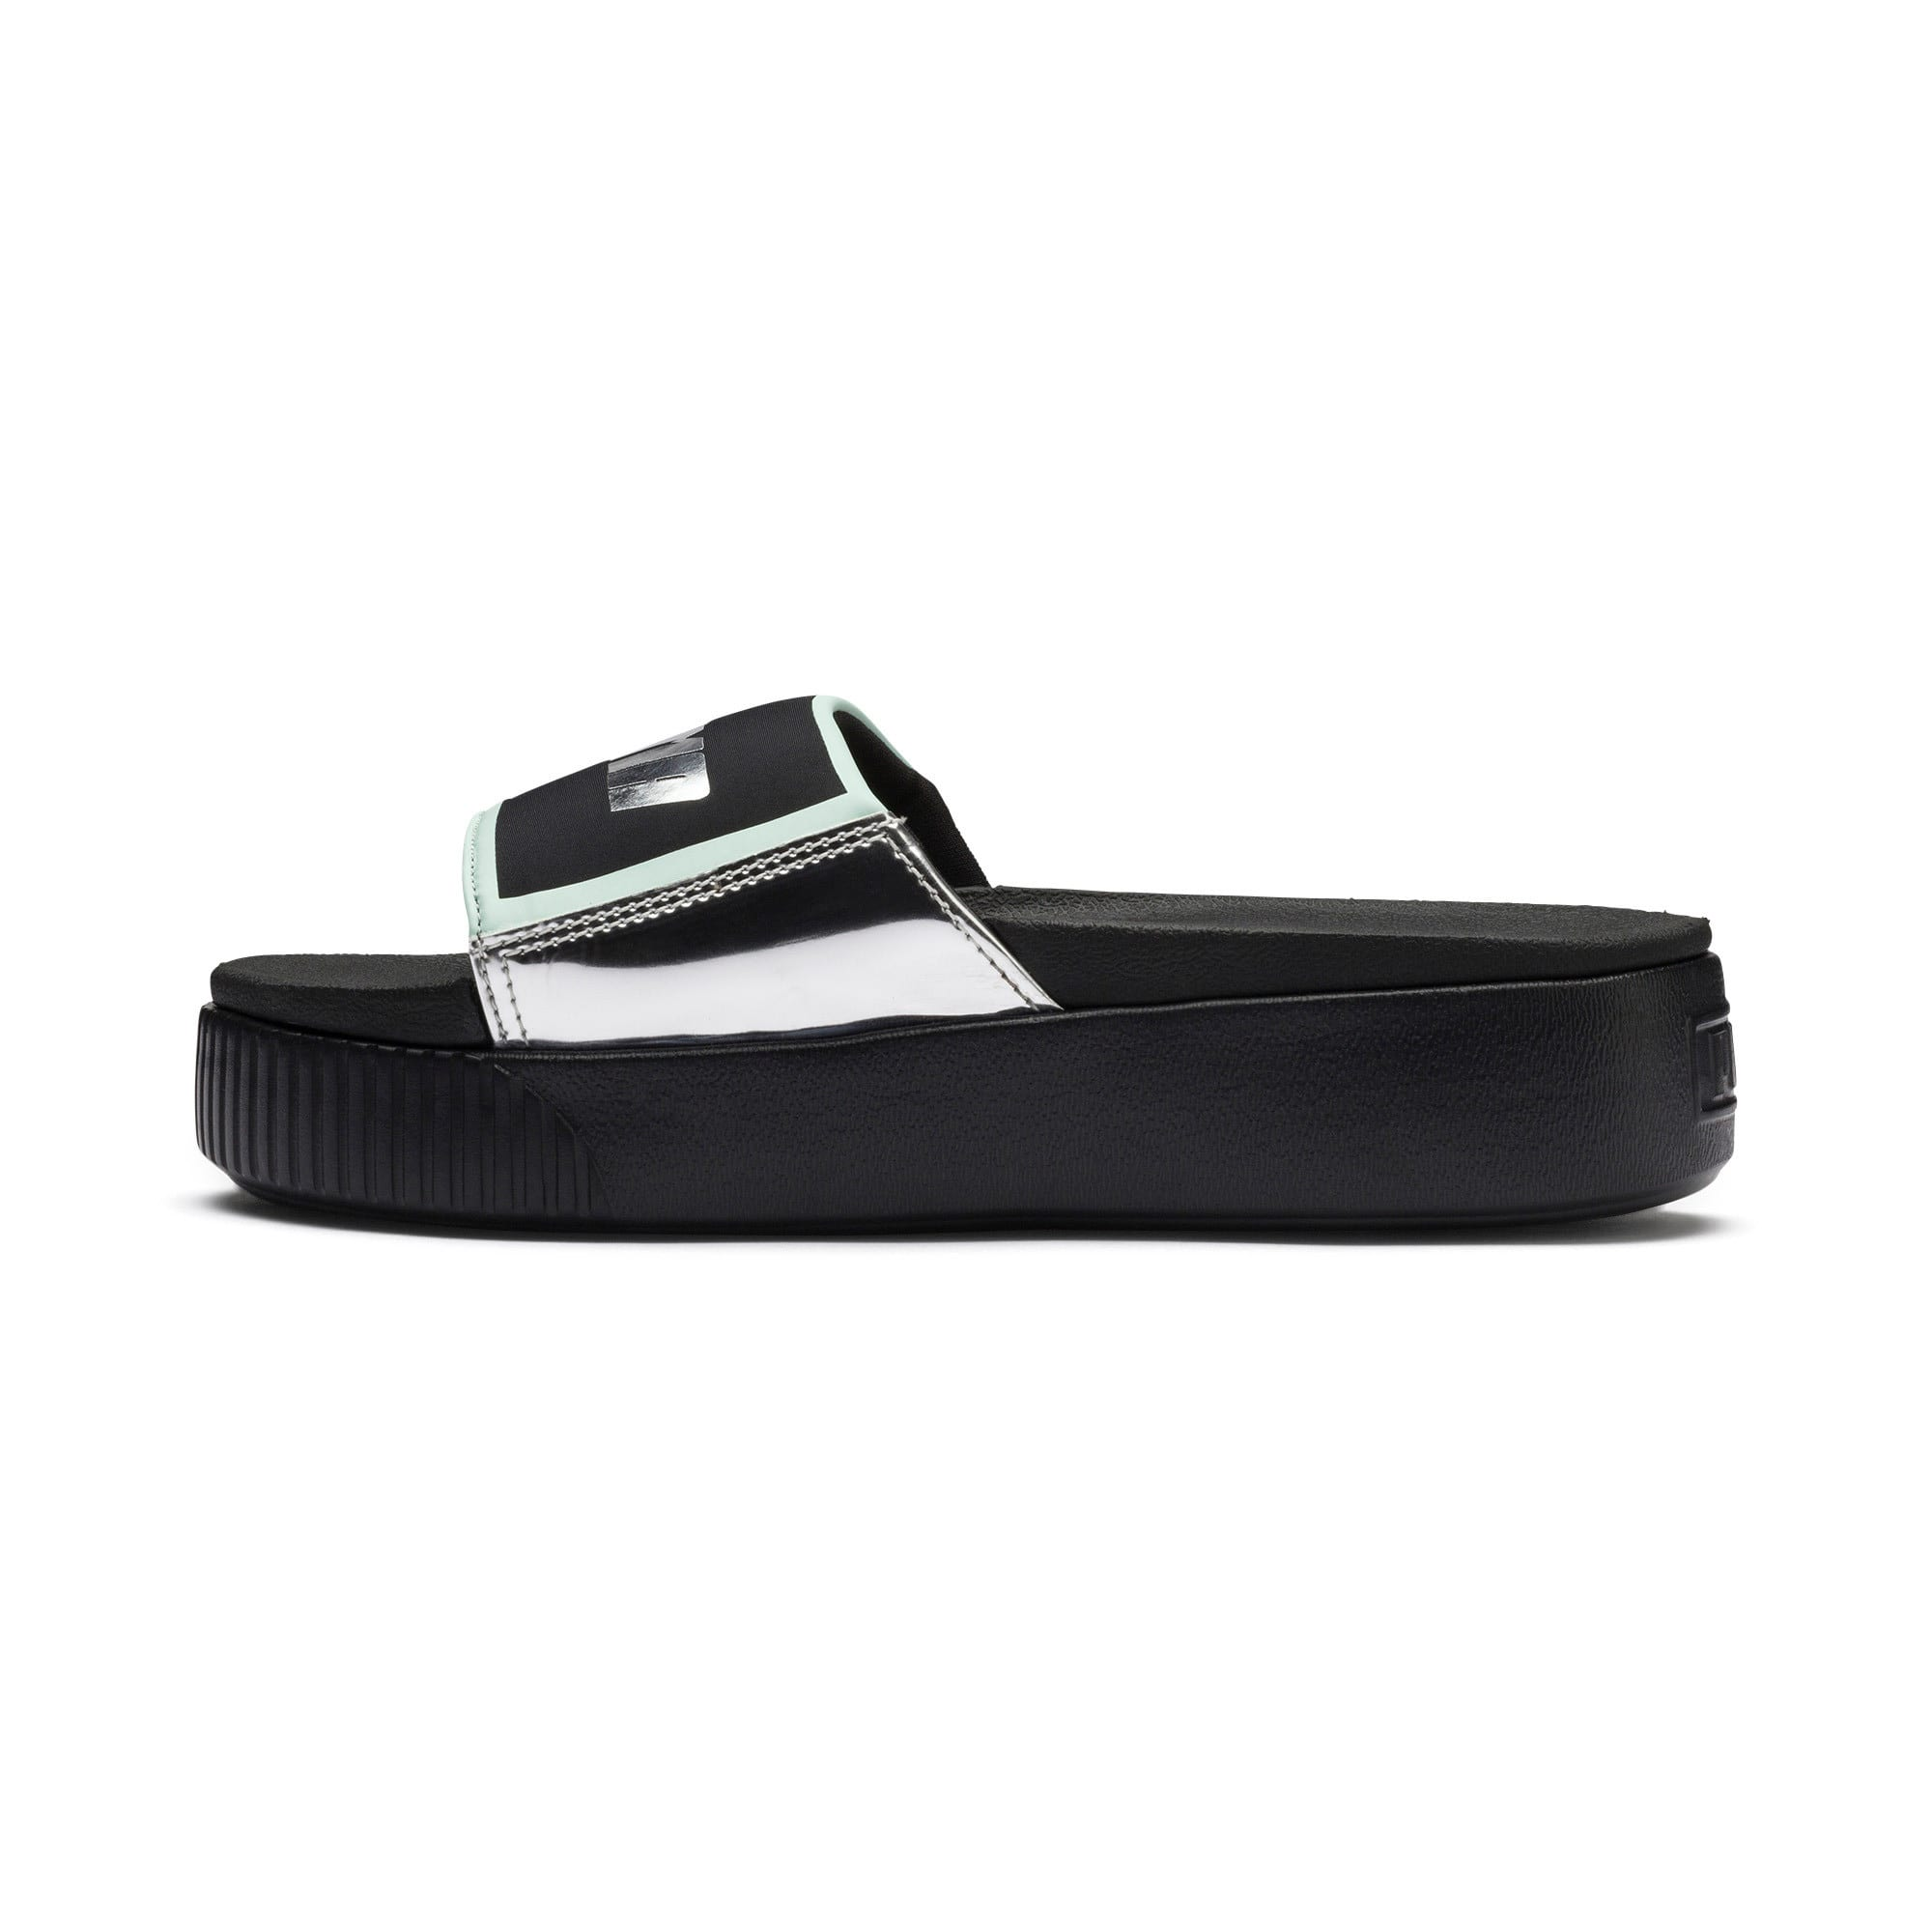 Thumbnail 1 of Platform Slide Trailblazer Metallic Damen Sandalen, Puma Black-Puma Silver, medium